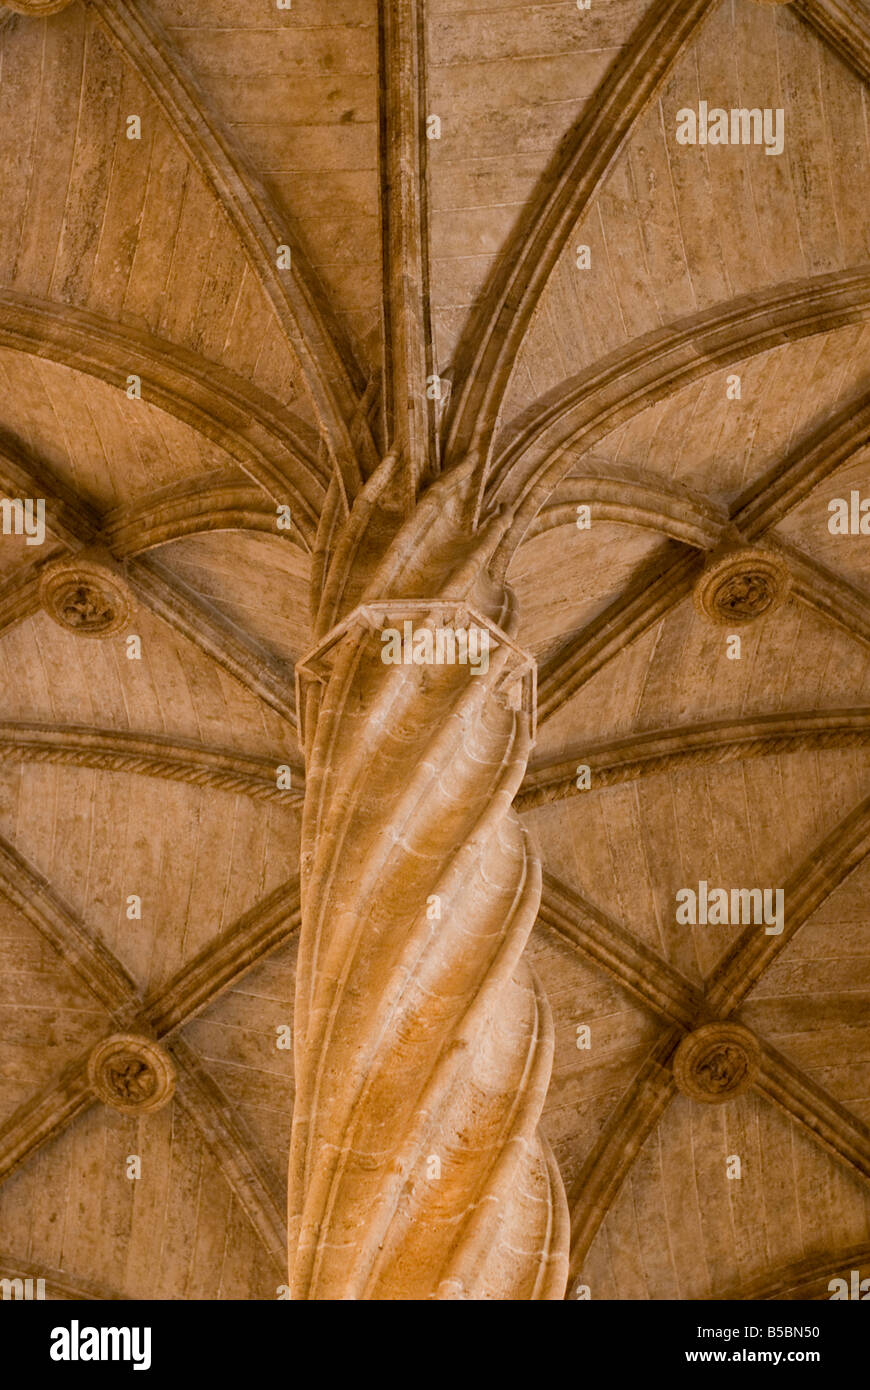 Helicoidal or spiral column with rib vaulted ceiling in La Lonja de la Seda formally a commodity exchange Valencia Stock Photo